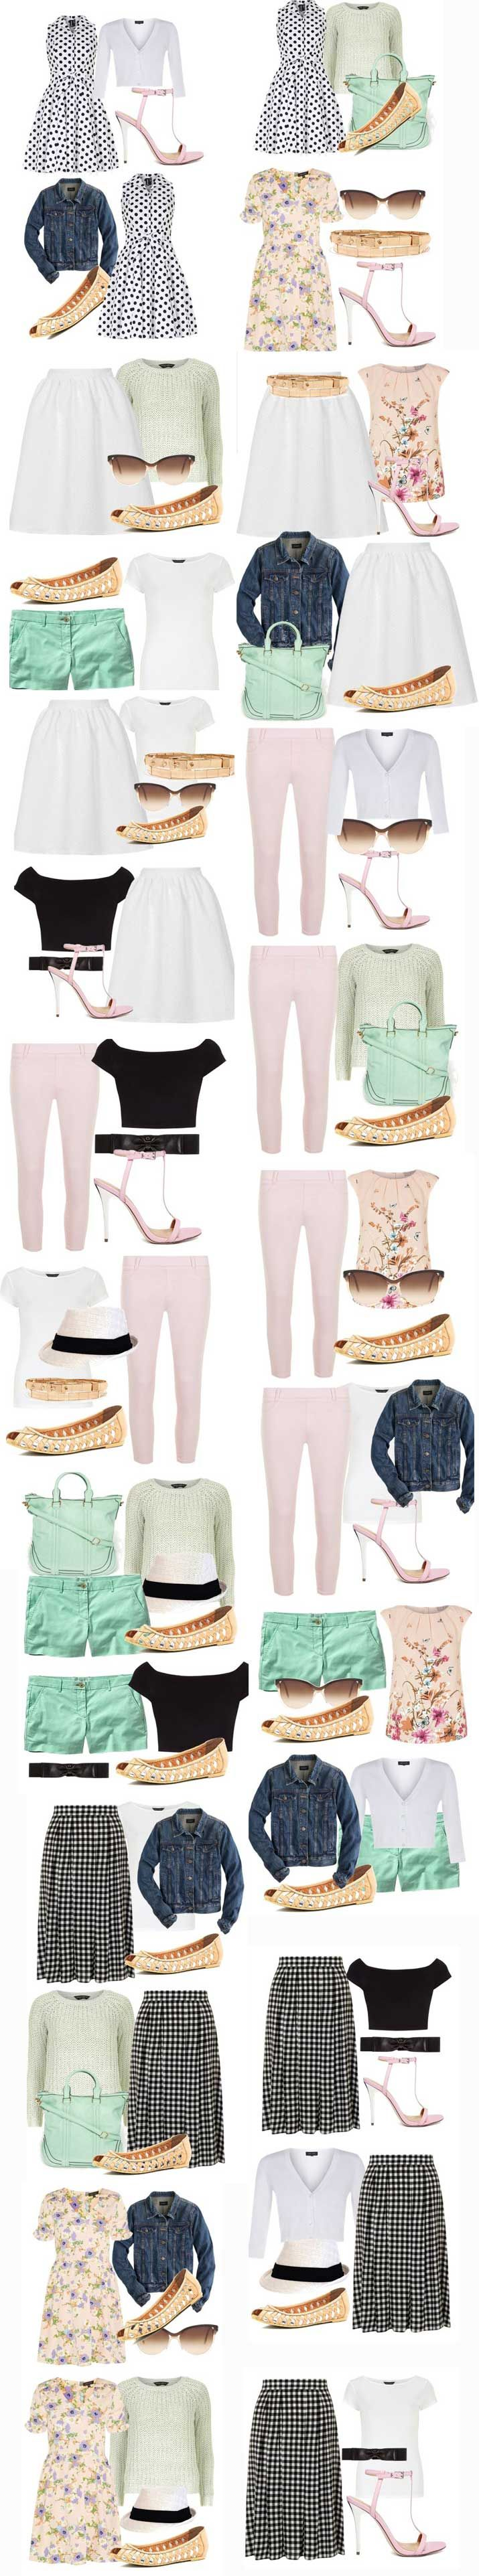 Summer Capsule Wardrobe: create a perfect capsule wardrobe Shoeperwoman